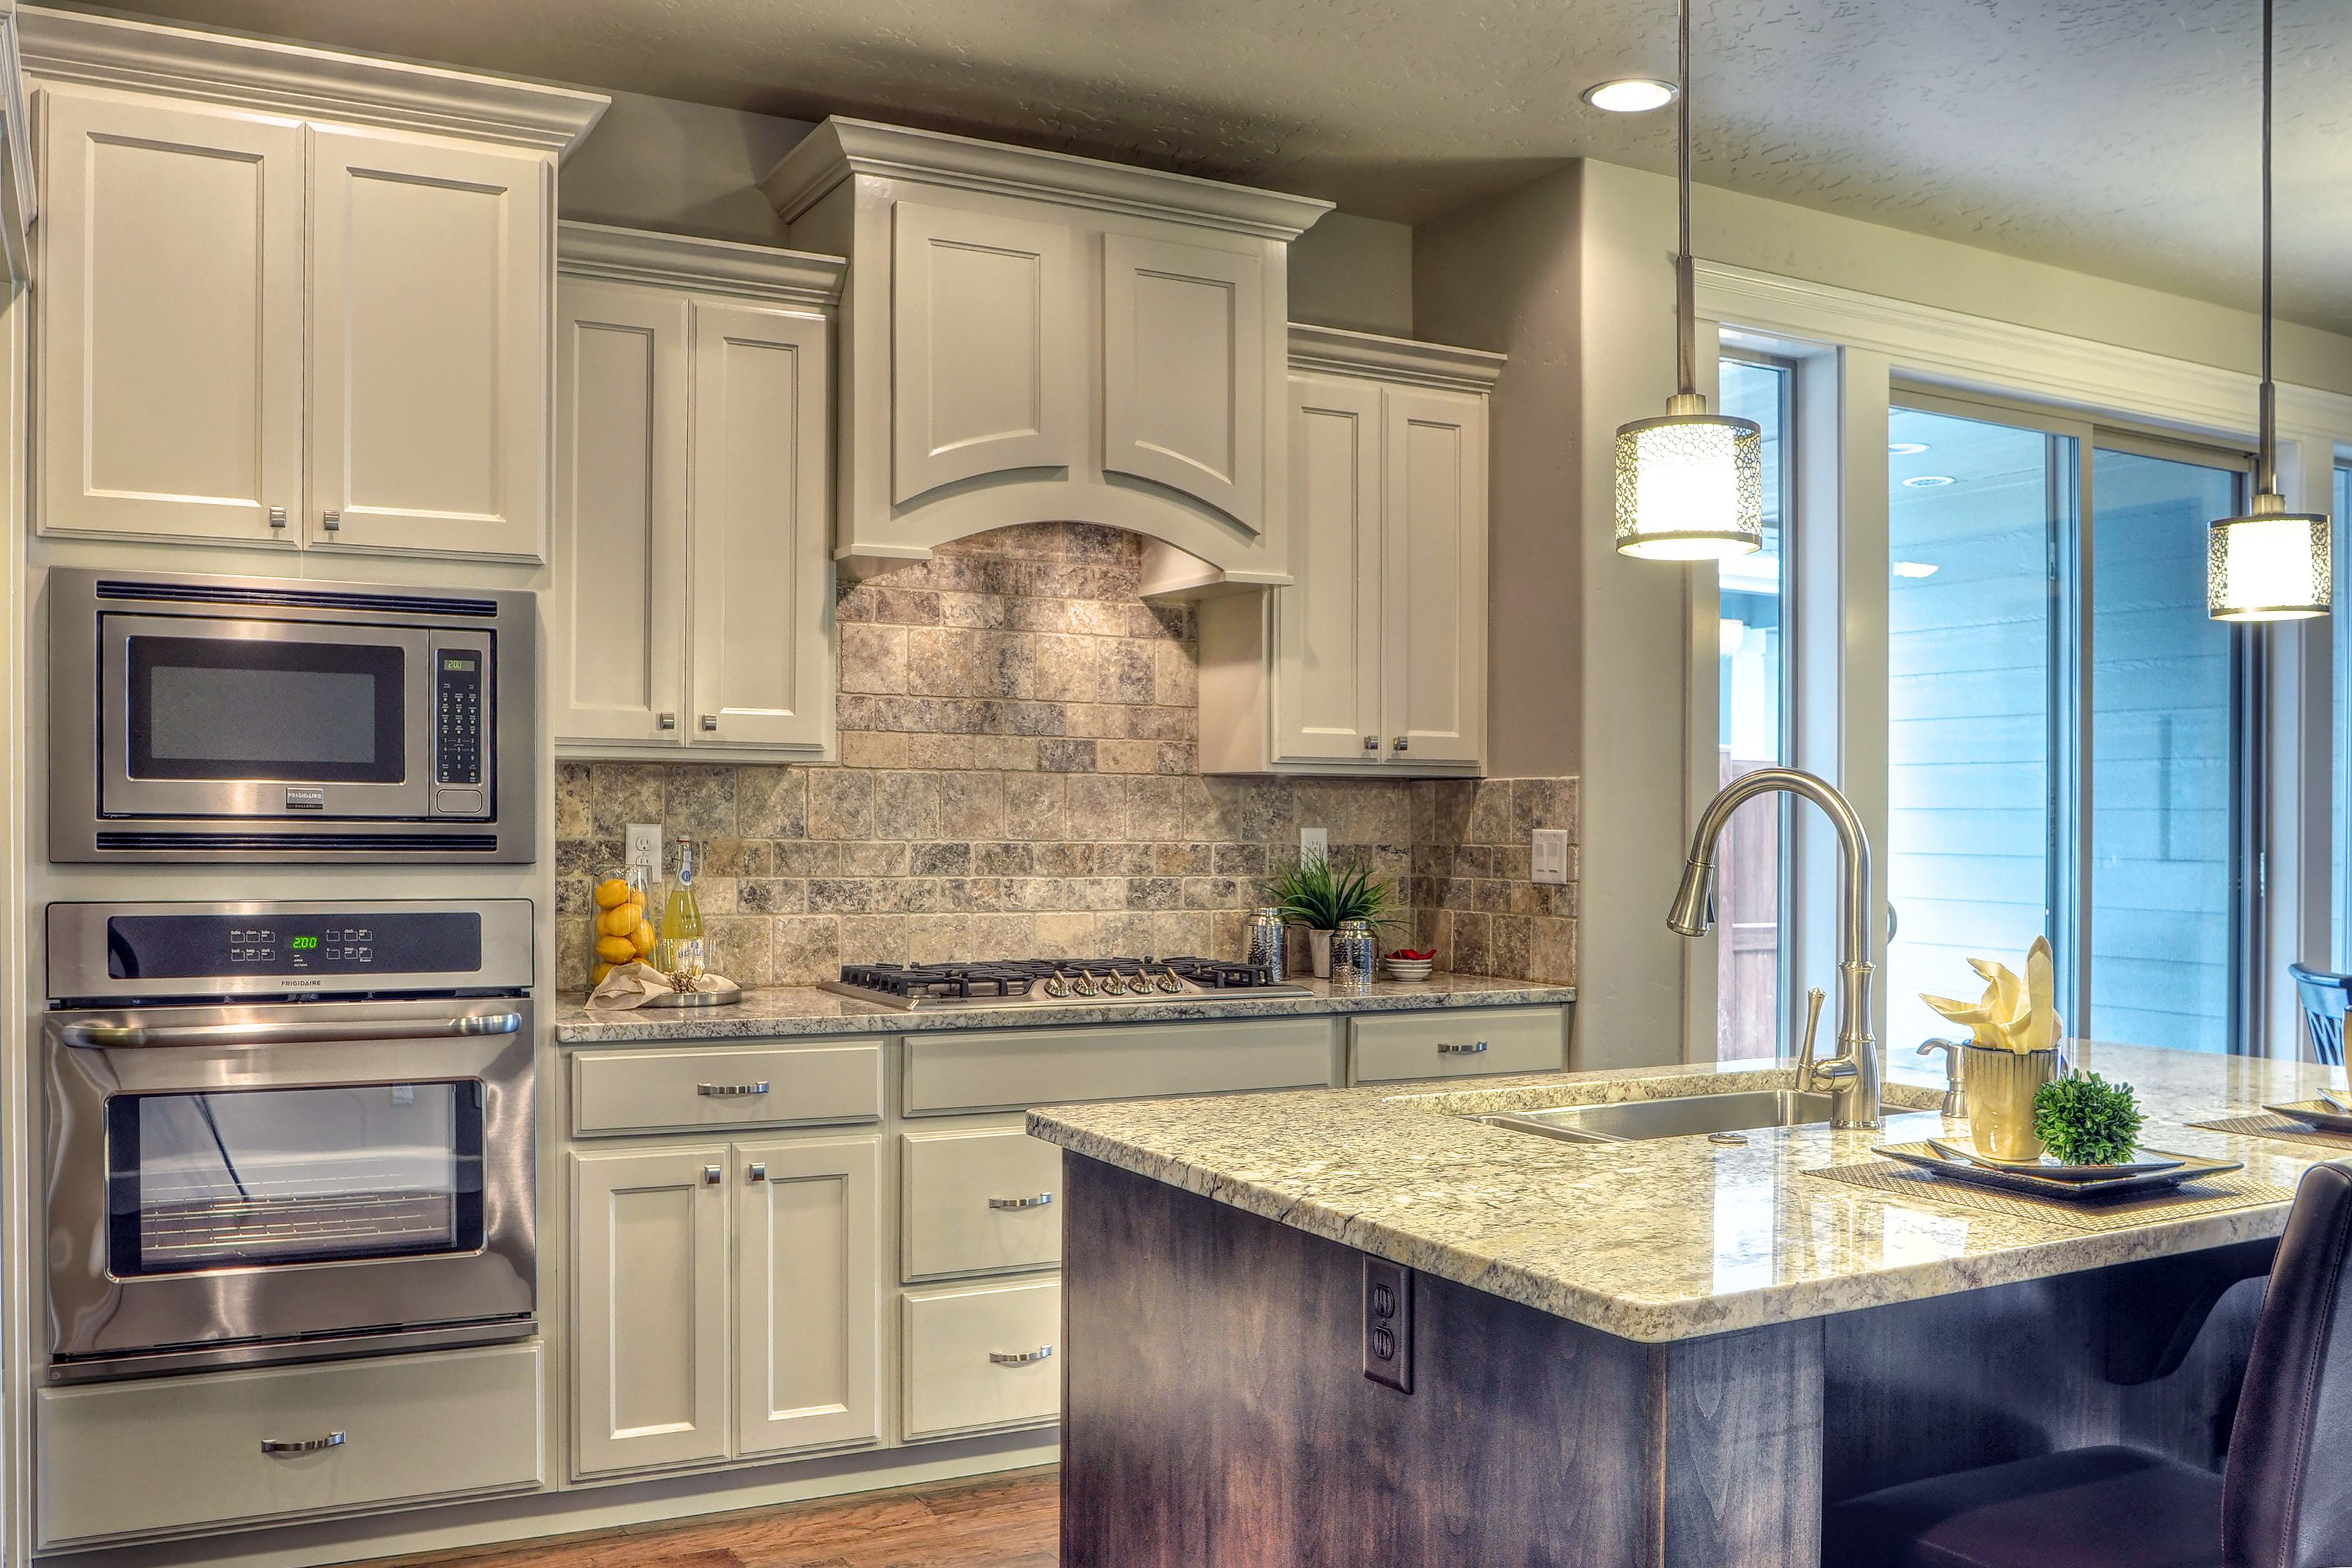 Sherwin Williams Snowbound Painted Cabinets Make The Kitchen Feel